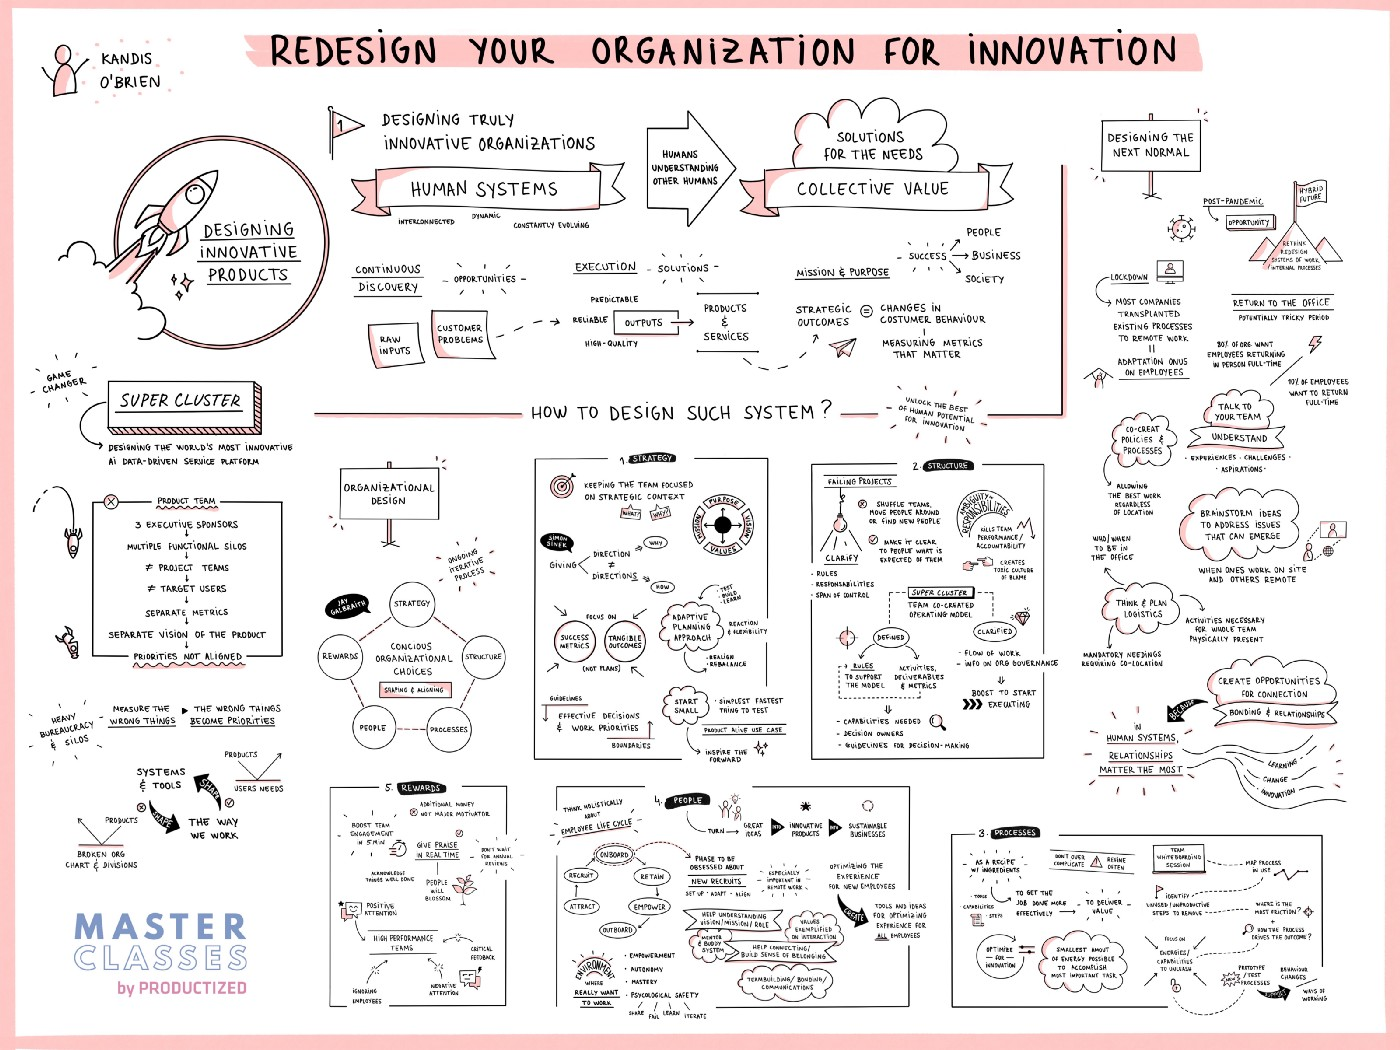 """Kandis O'Brien Sketch """"Redesign your organization for innovation"""""""